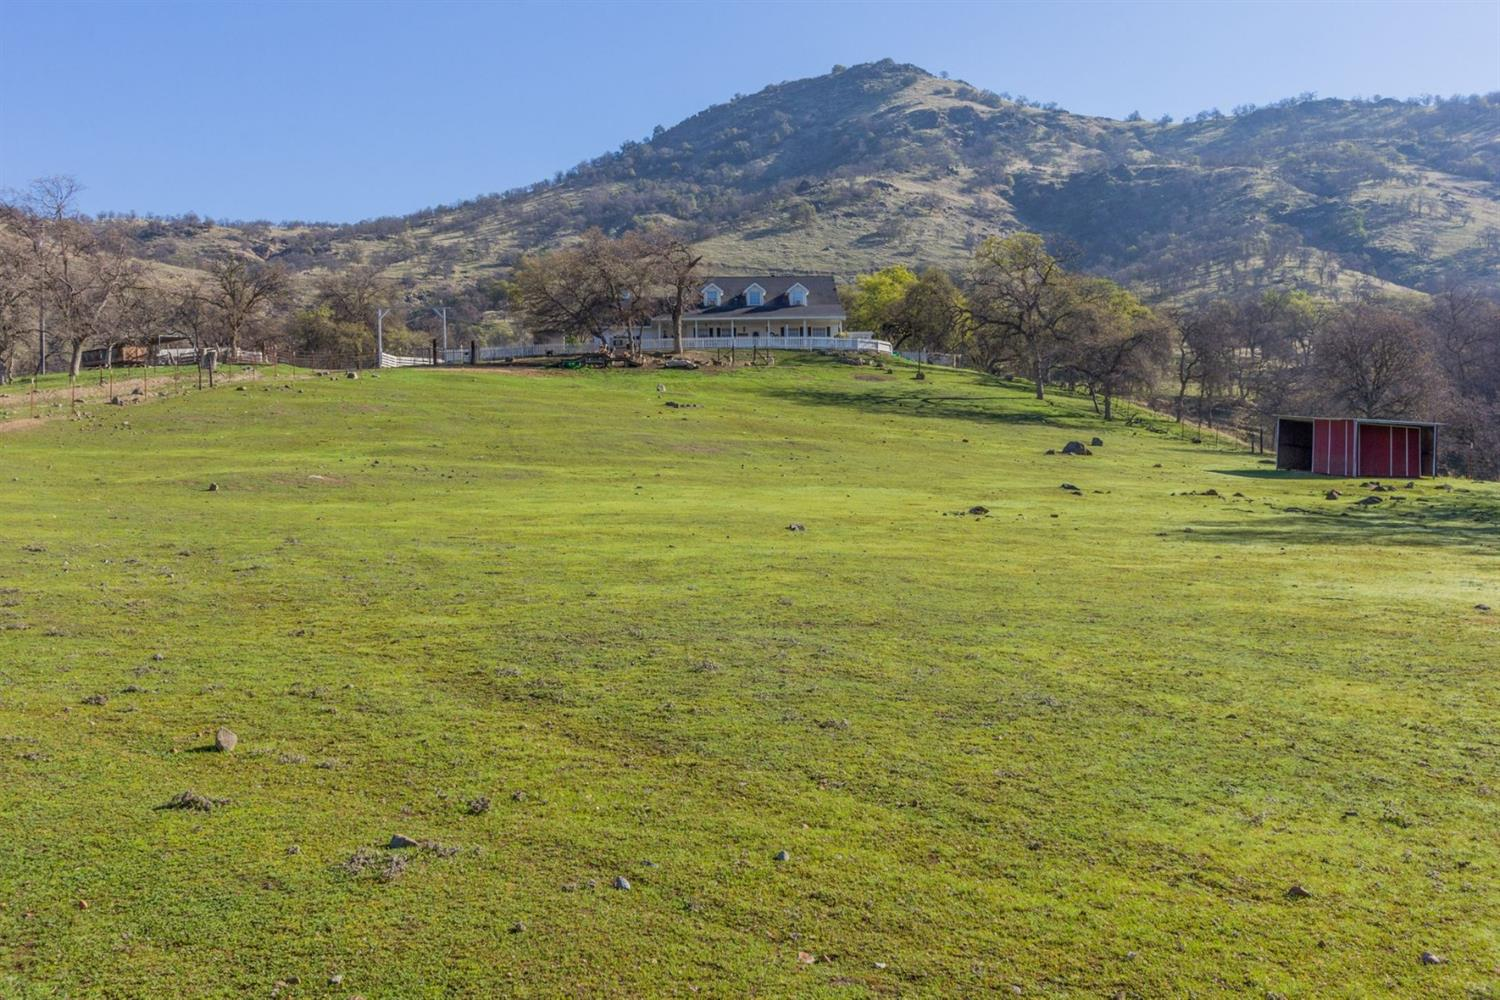 Rare 98 acre property backing up to thousands of cattle land acres which offers extreme privacy and spectacular views, yet has easy access and is just 35 minutes from the city, 35 min to the airport. Add to this the extremely well built custom home and you have a one of a kind estate. Imagine sitting on your 50'long cov'd front porch & overlooking your gorgeous property and views below.  The seller overbuilt w/commercial wiring, 2x6 construction, extra strong insulated subfloors and many other upgraded features.  There are built-in cabinets/shelving, functioning dormer windows and ceiling fans throughout. There's a year round spring & season creek too.